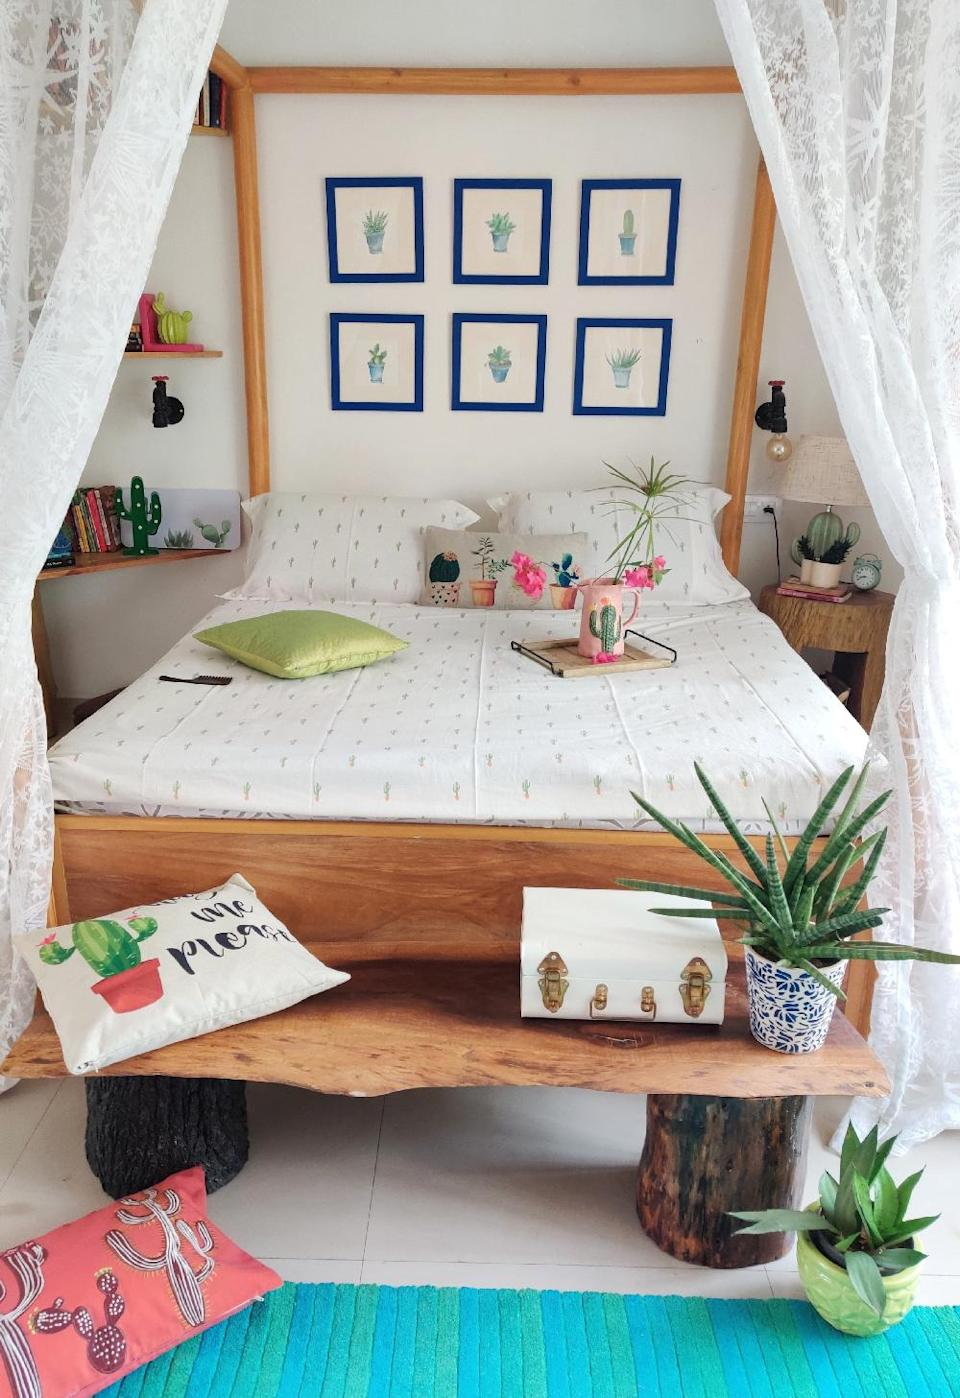 The succulent-themed guest bedroom.